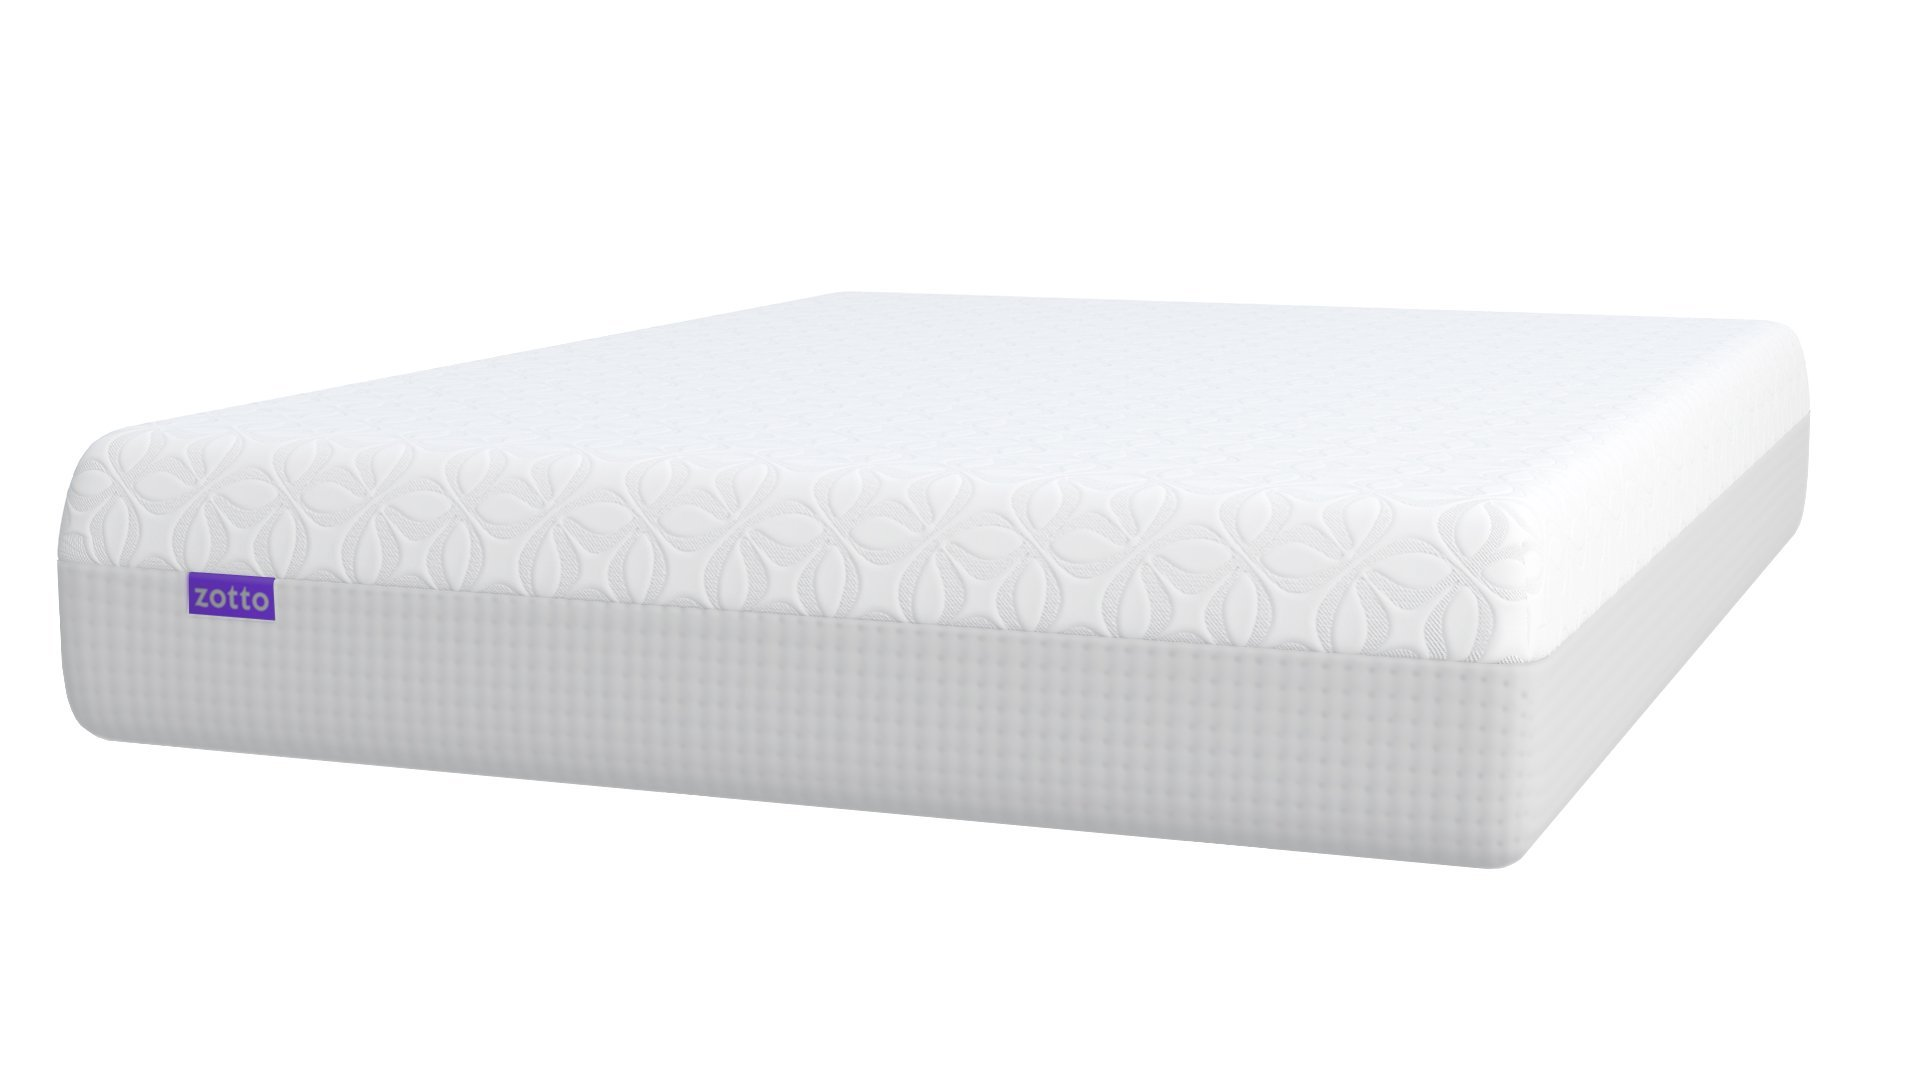 Zotto Sleep Mattress, Full